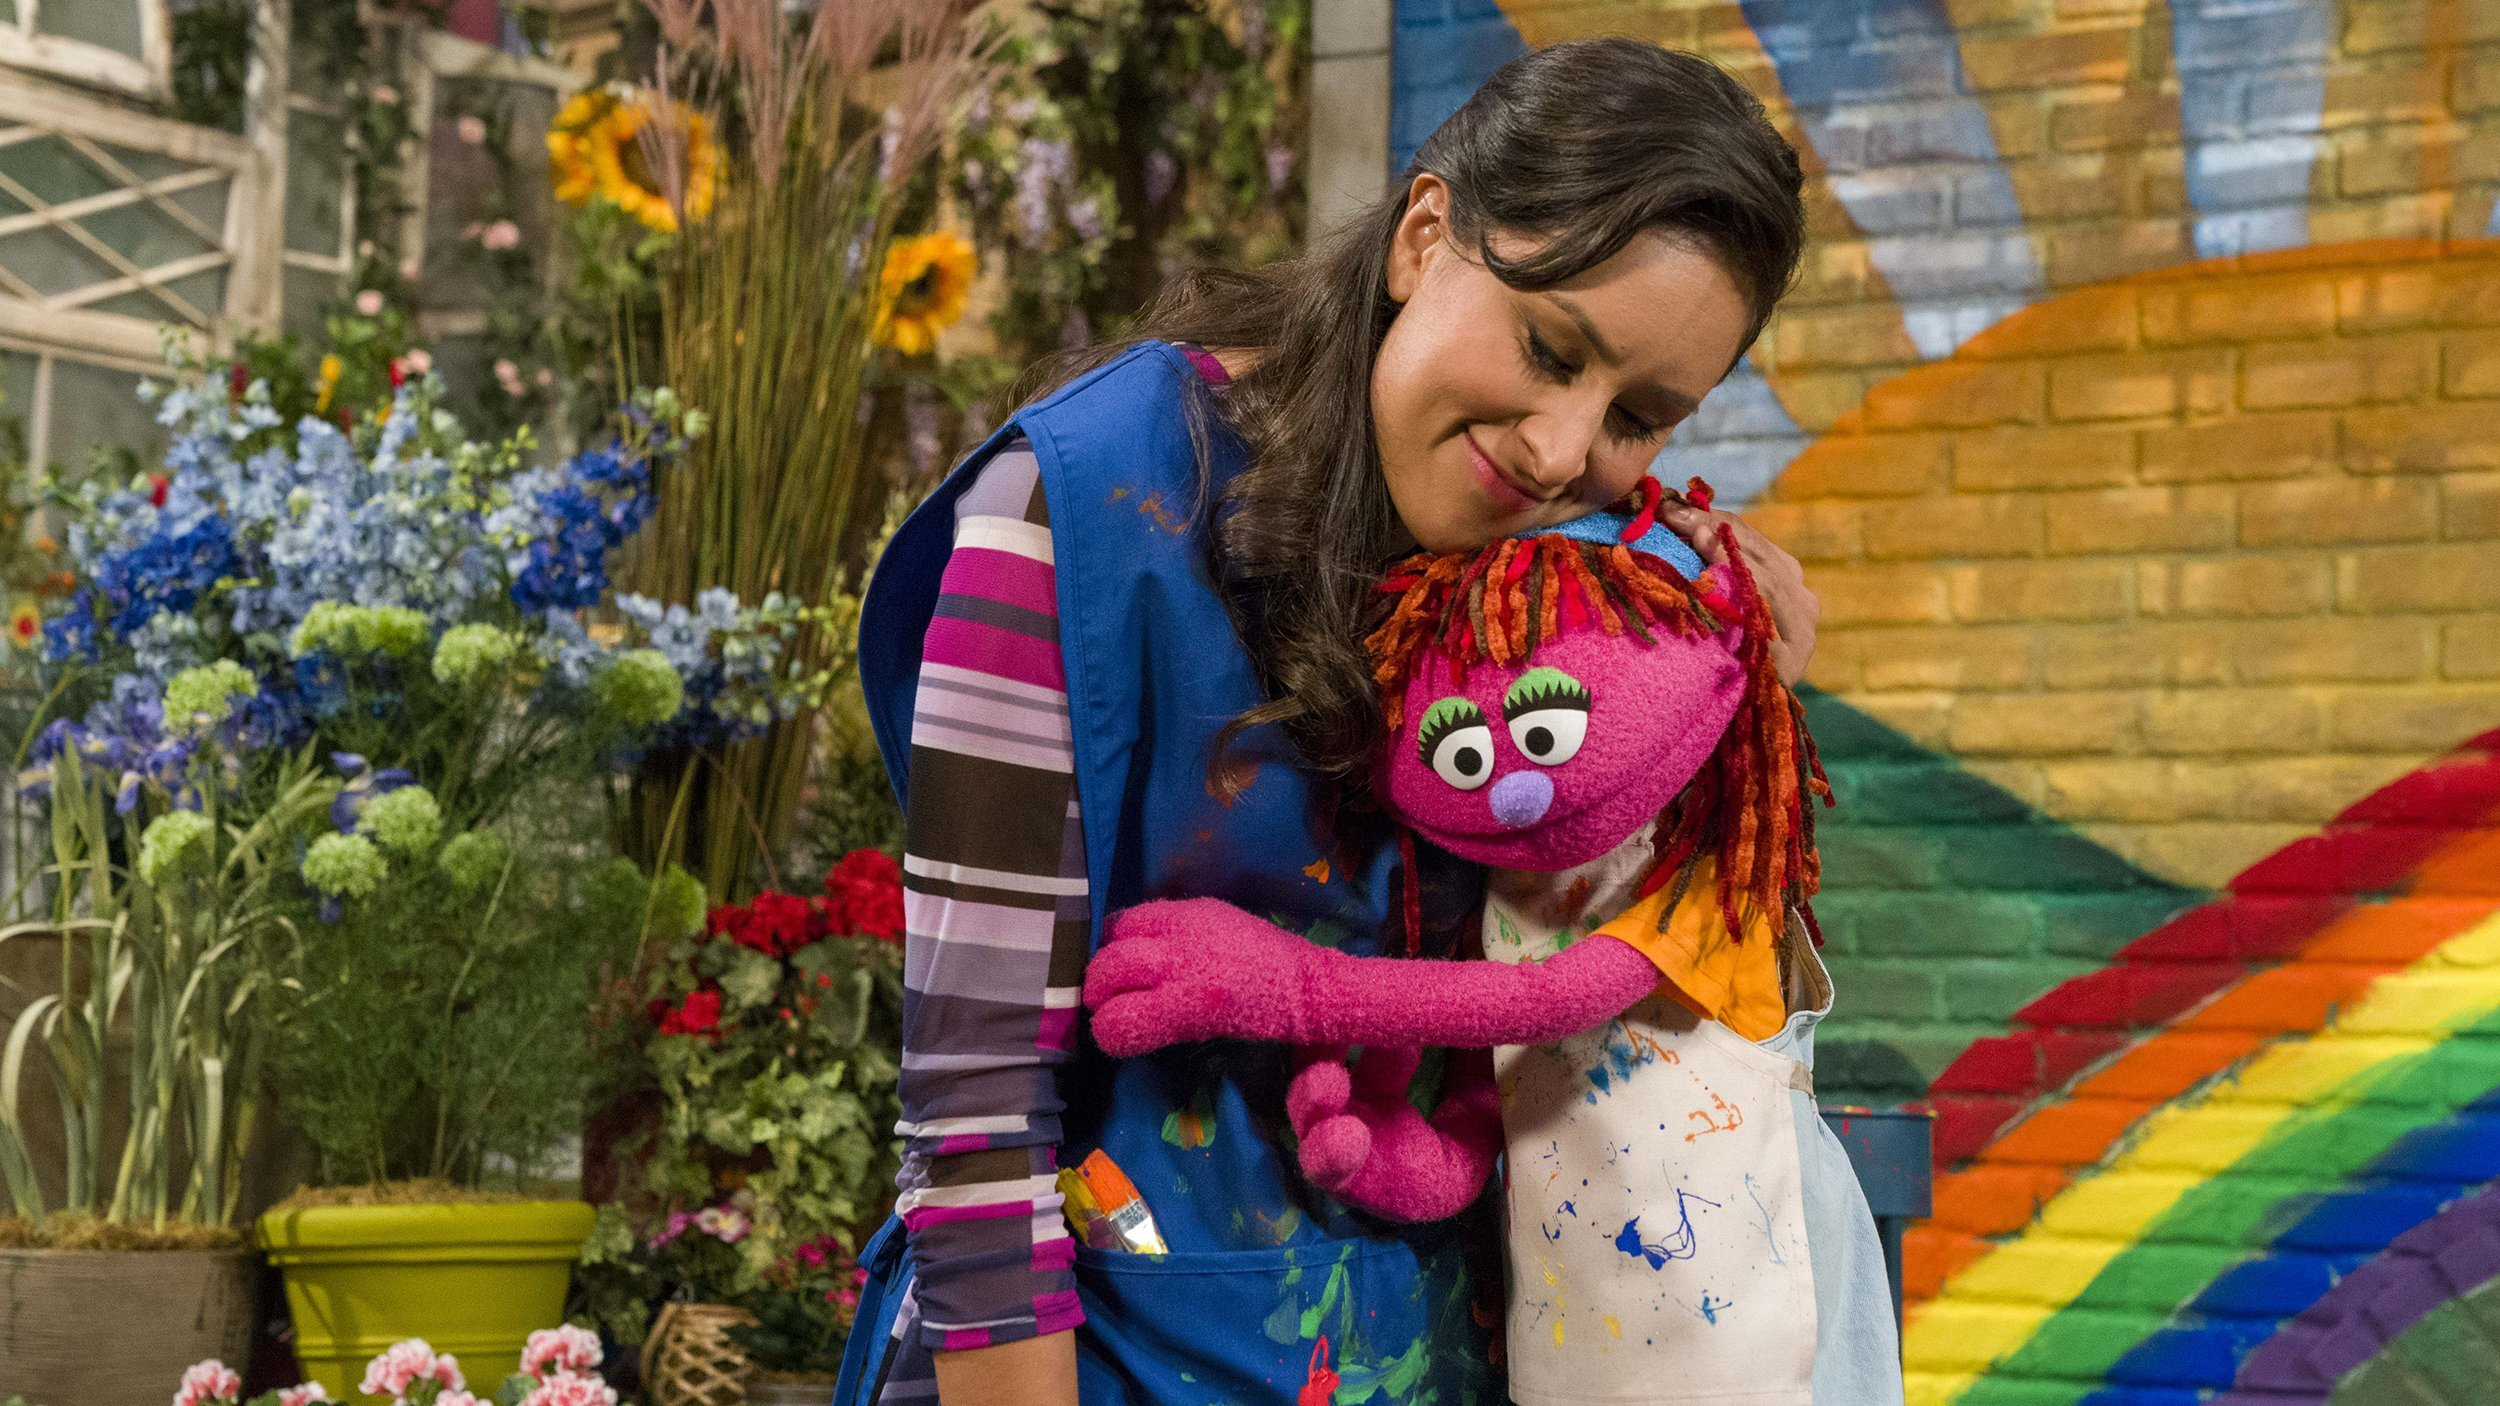 For the first time, a resident of Sesame Street is experiencing homelessness -- and the hope is that her story can help sweep the clouds away for the growing number of young chil